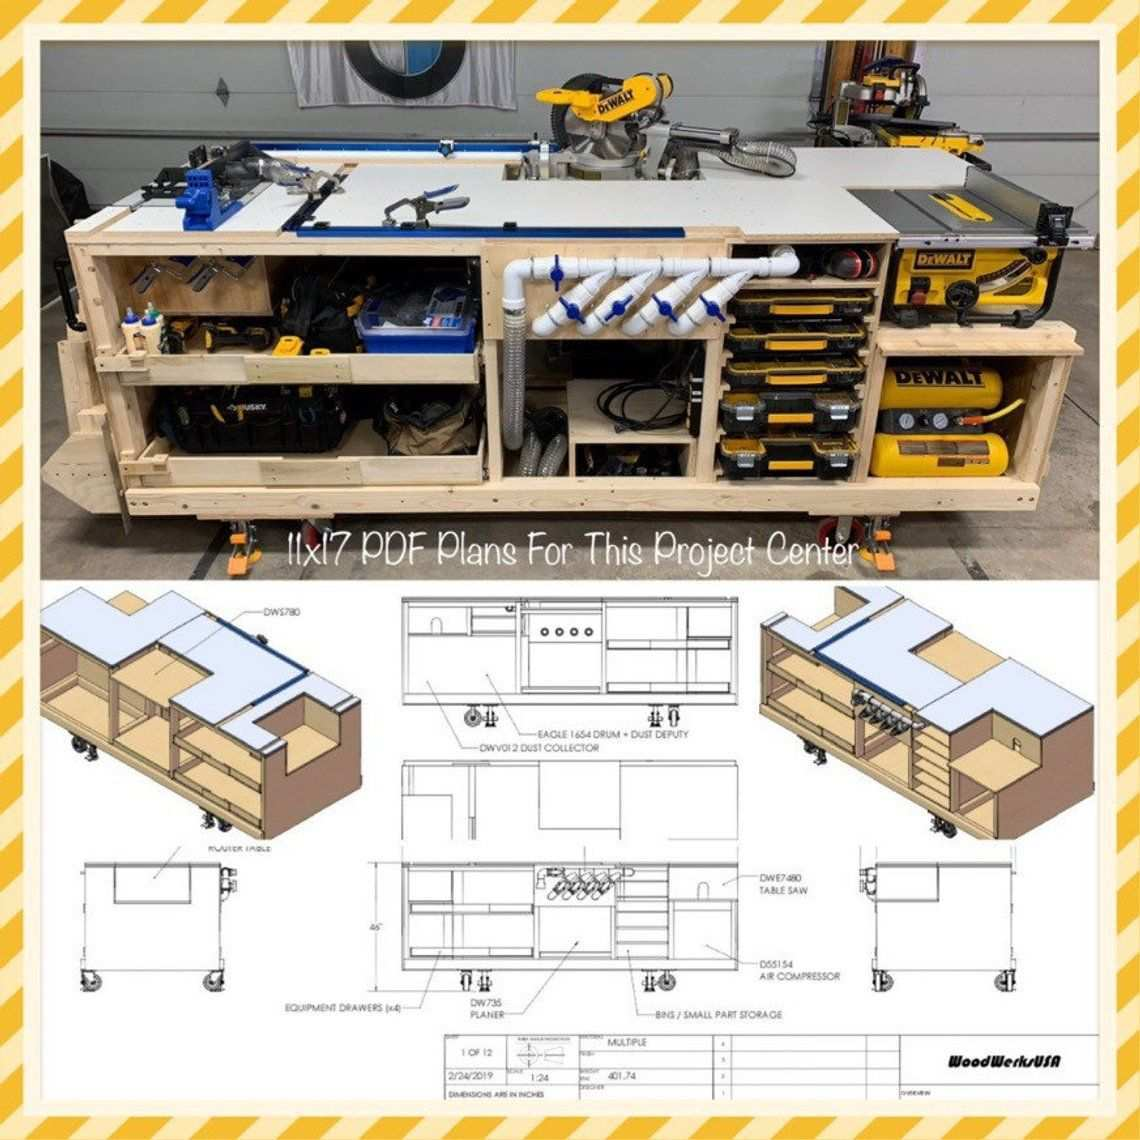 Pdf Mobile Project Center Workbench Plans Dewalt Kreg Etsy Workbench Plans Workbench Plans Diy Mobile Project